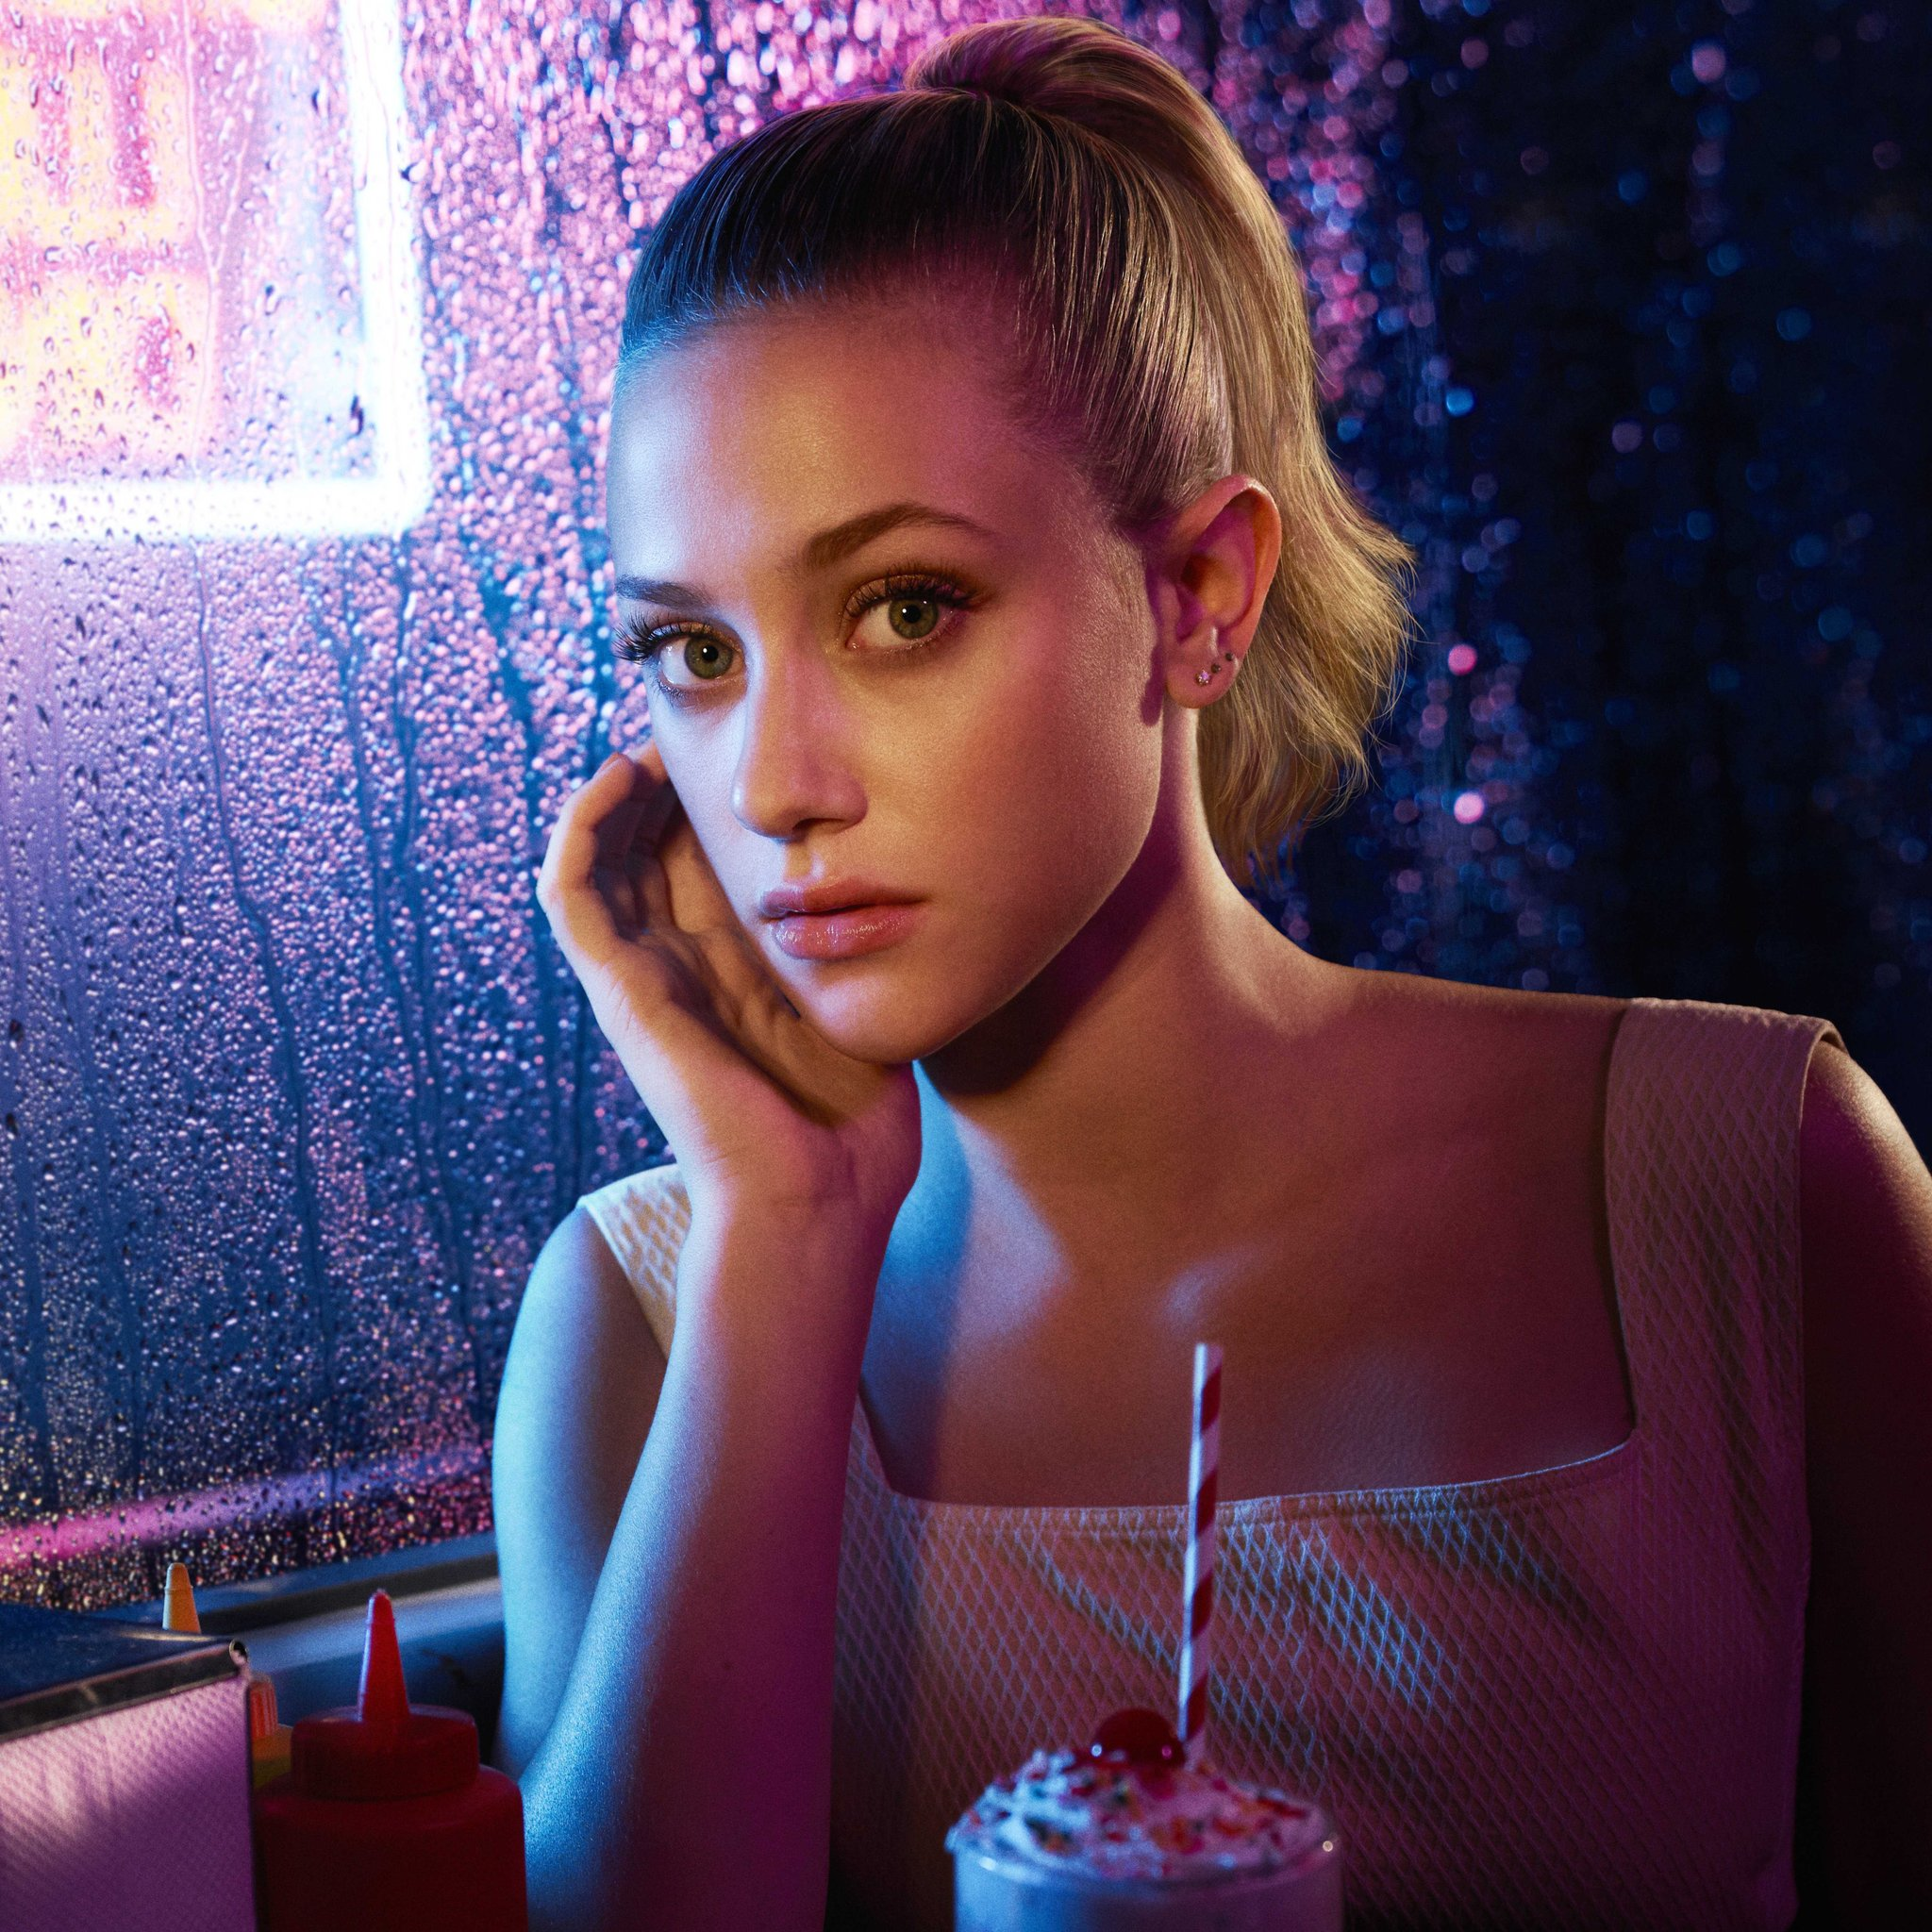 Betty Cooper In Riverdale, HD Tv Shows, 4k Wallpapers